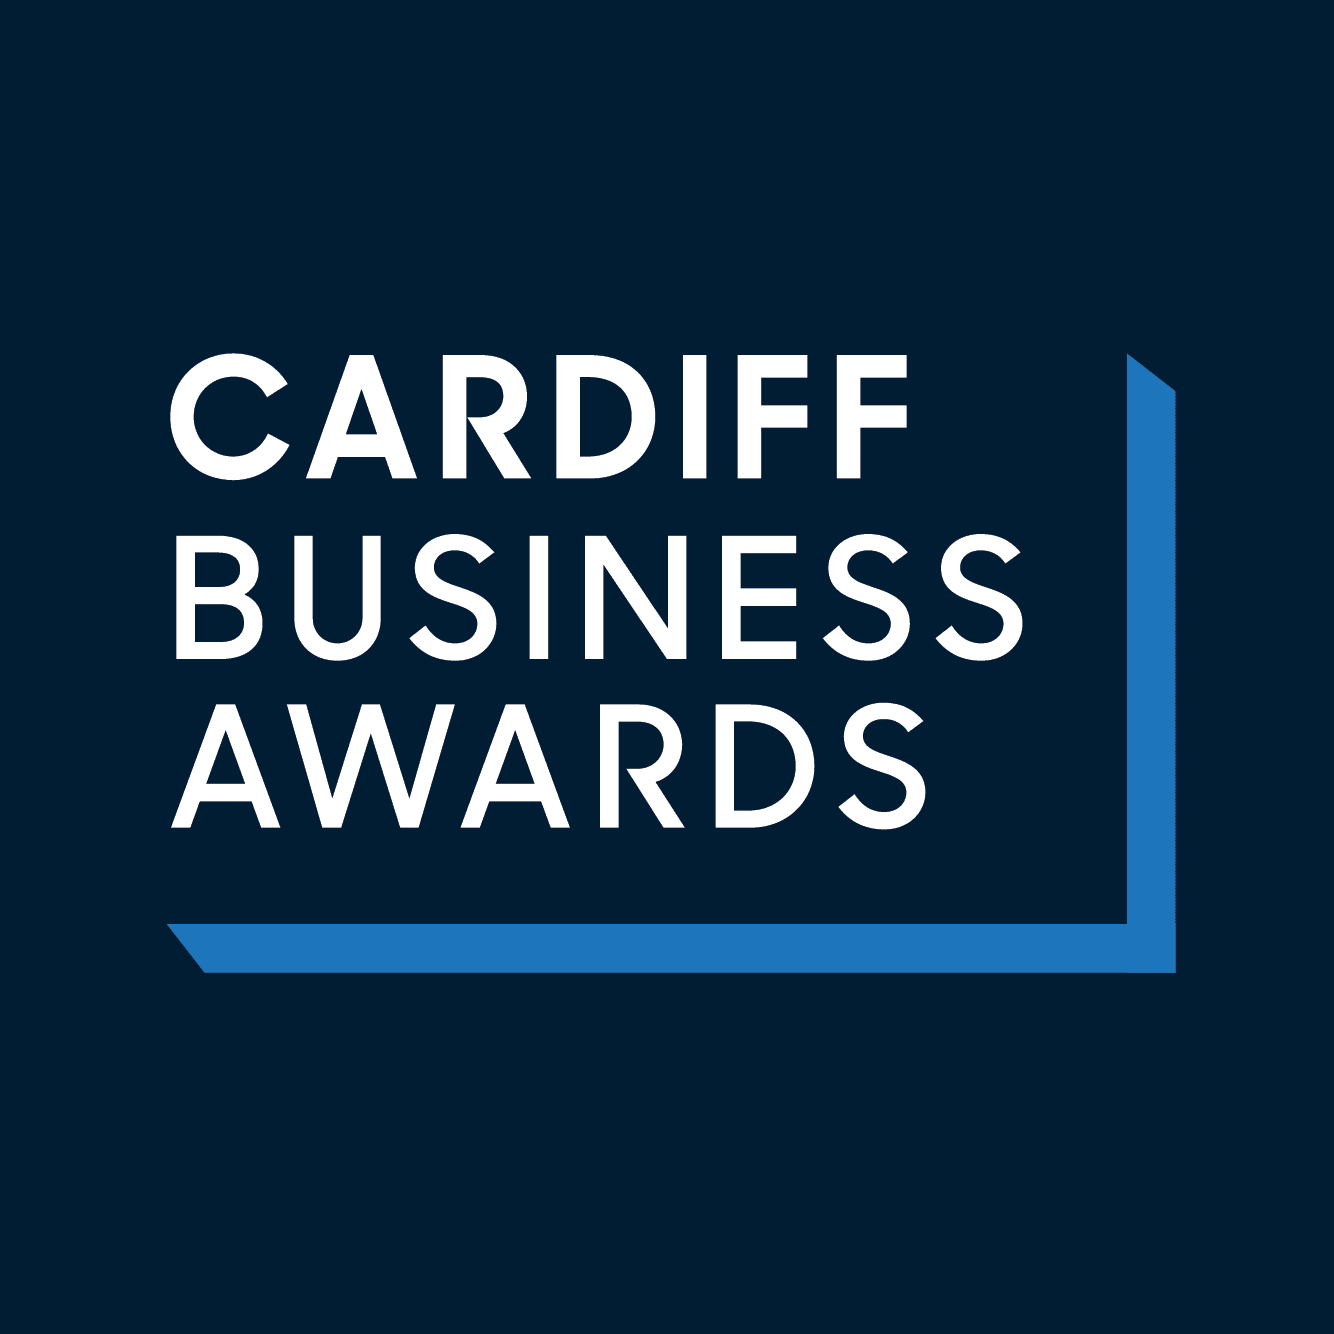 Cardiff Business Awards 2019: Genesis Biosciences up for two awards